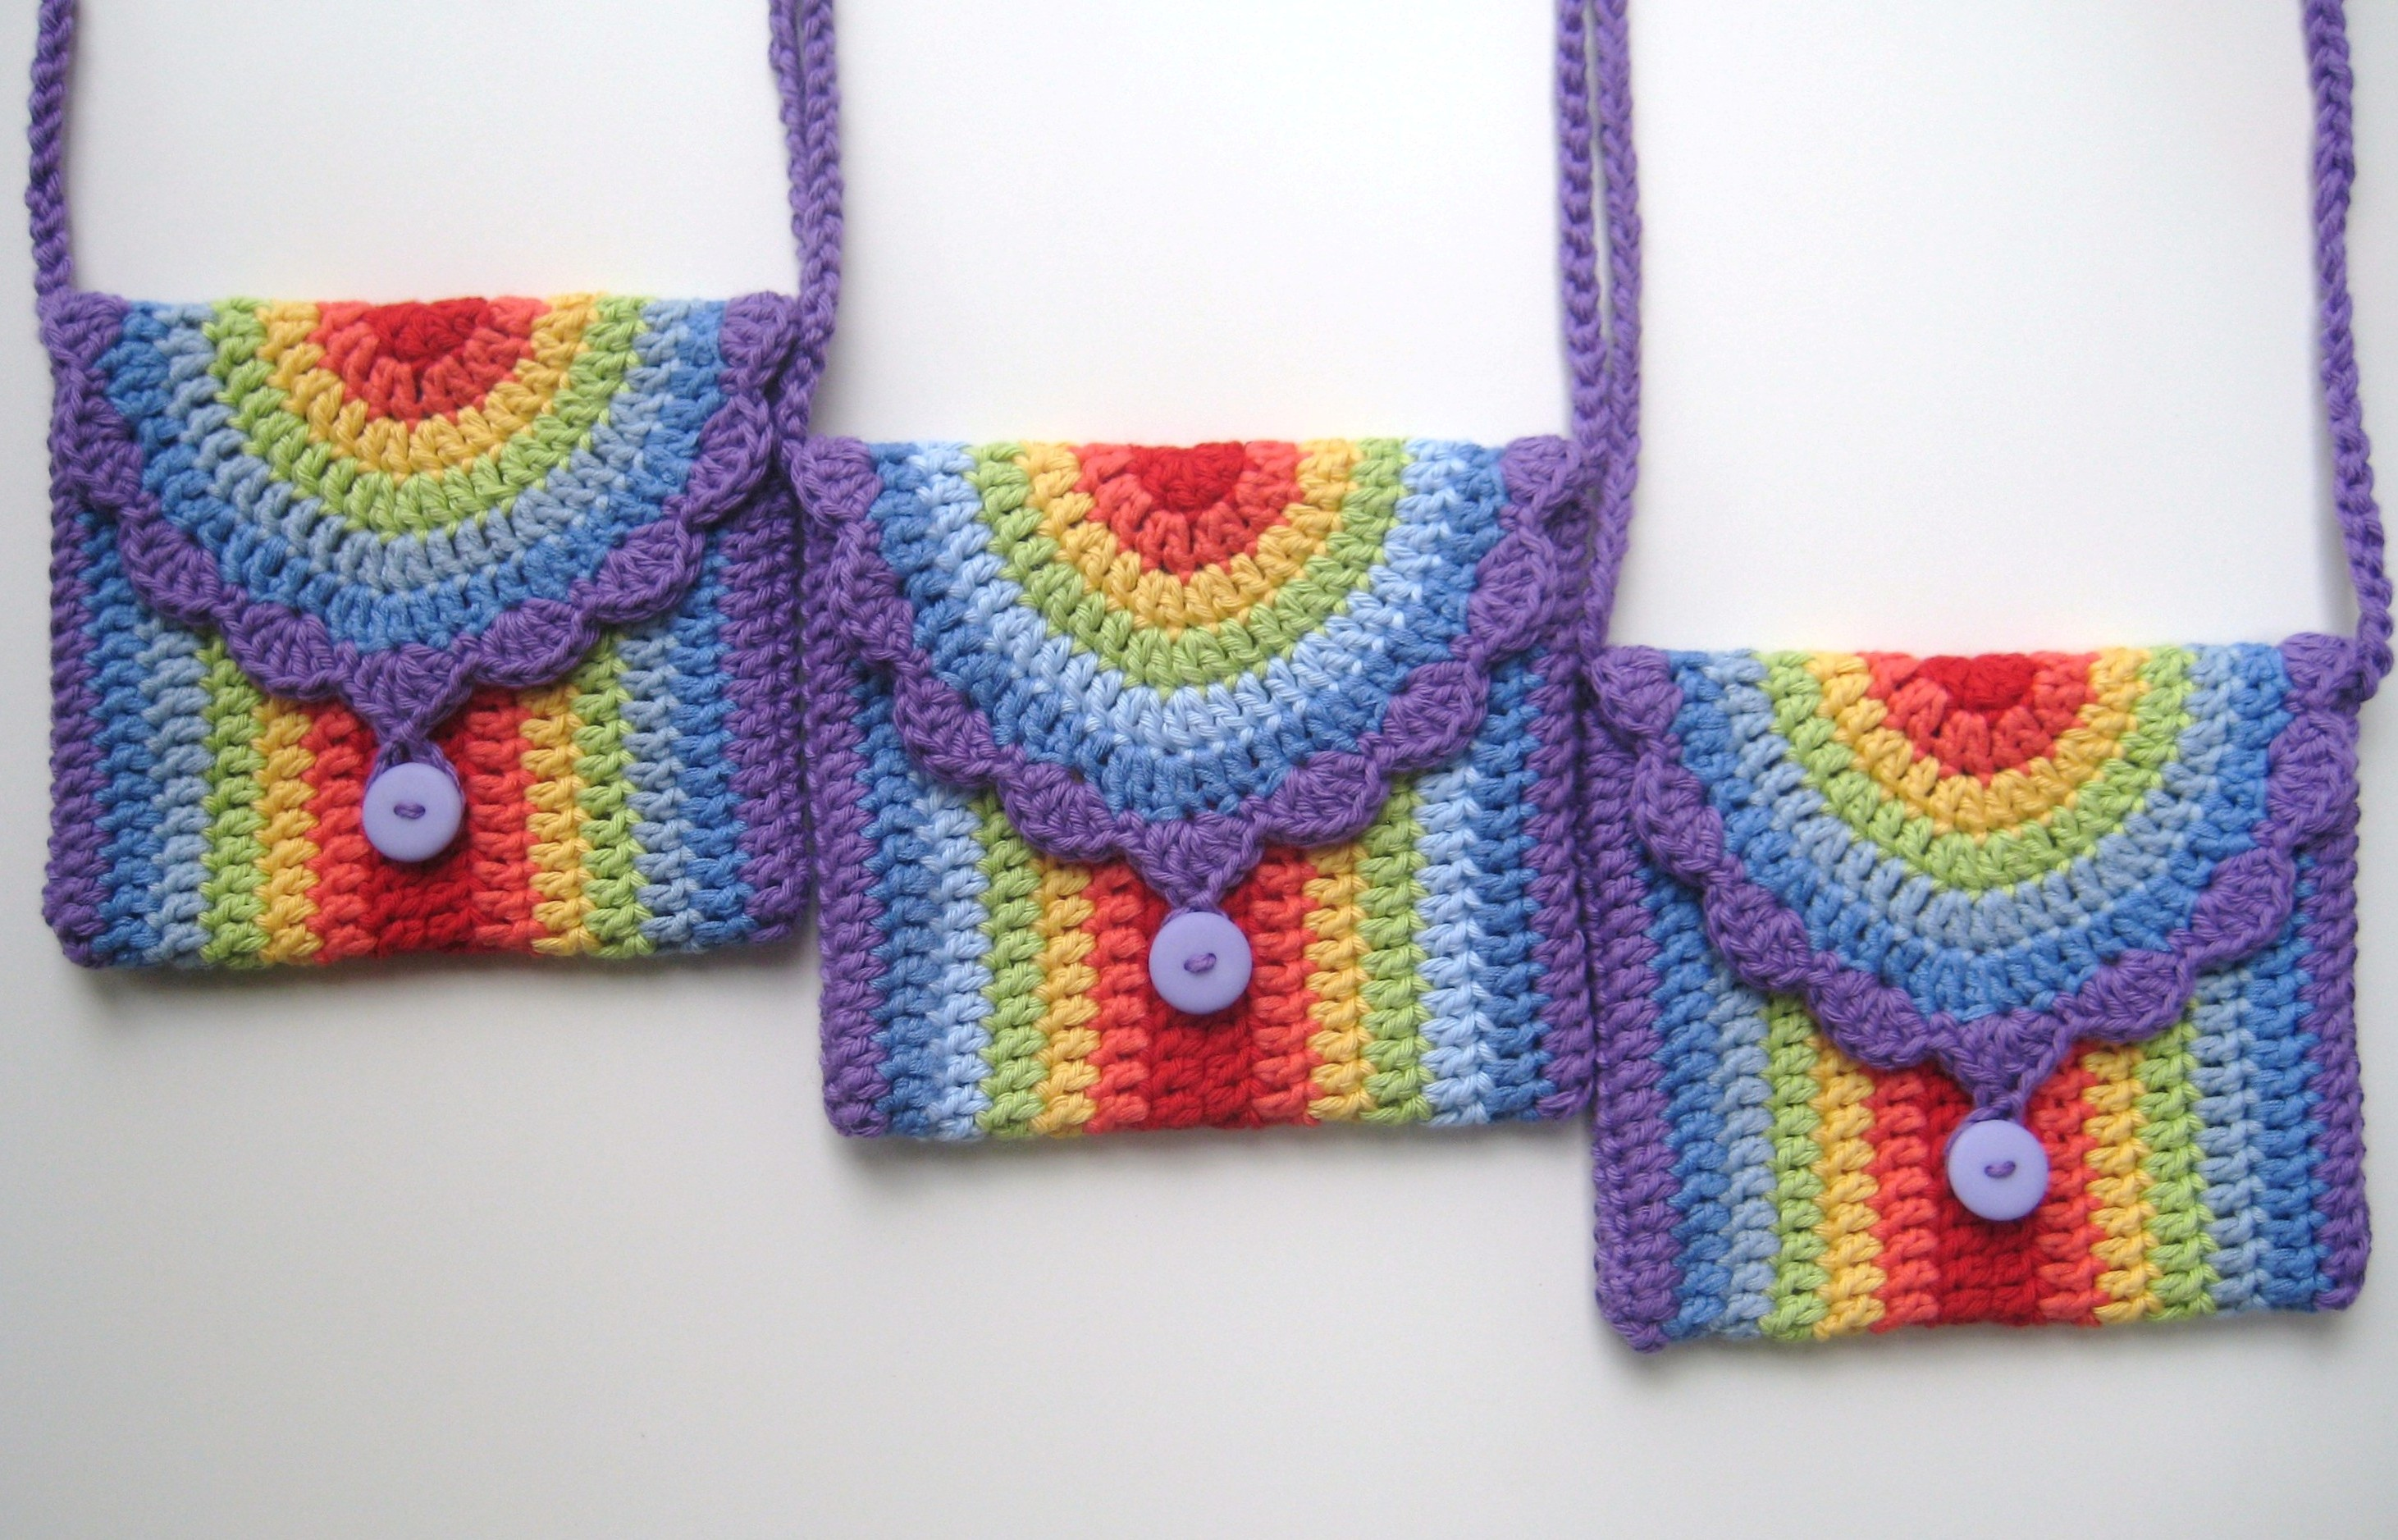 Crochet bag, Rainbow bag, Pattern No14, in both UK and US crochet terms